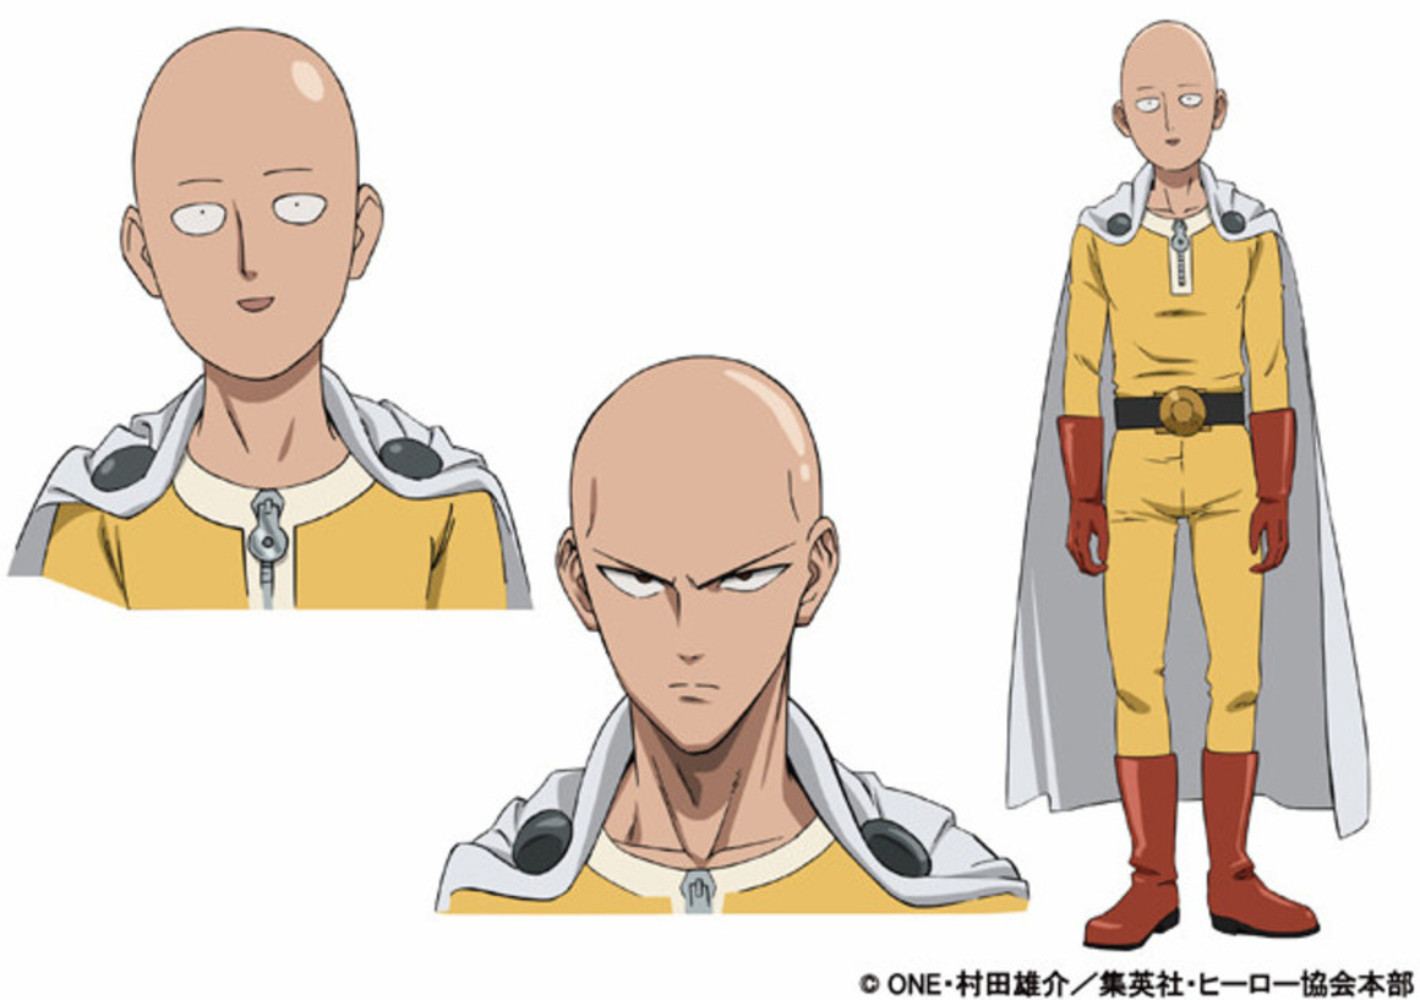 Know more about Saitama, the 'Mimi?' meme